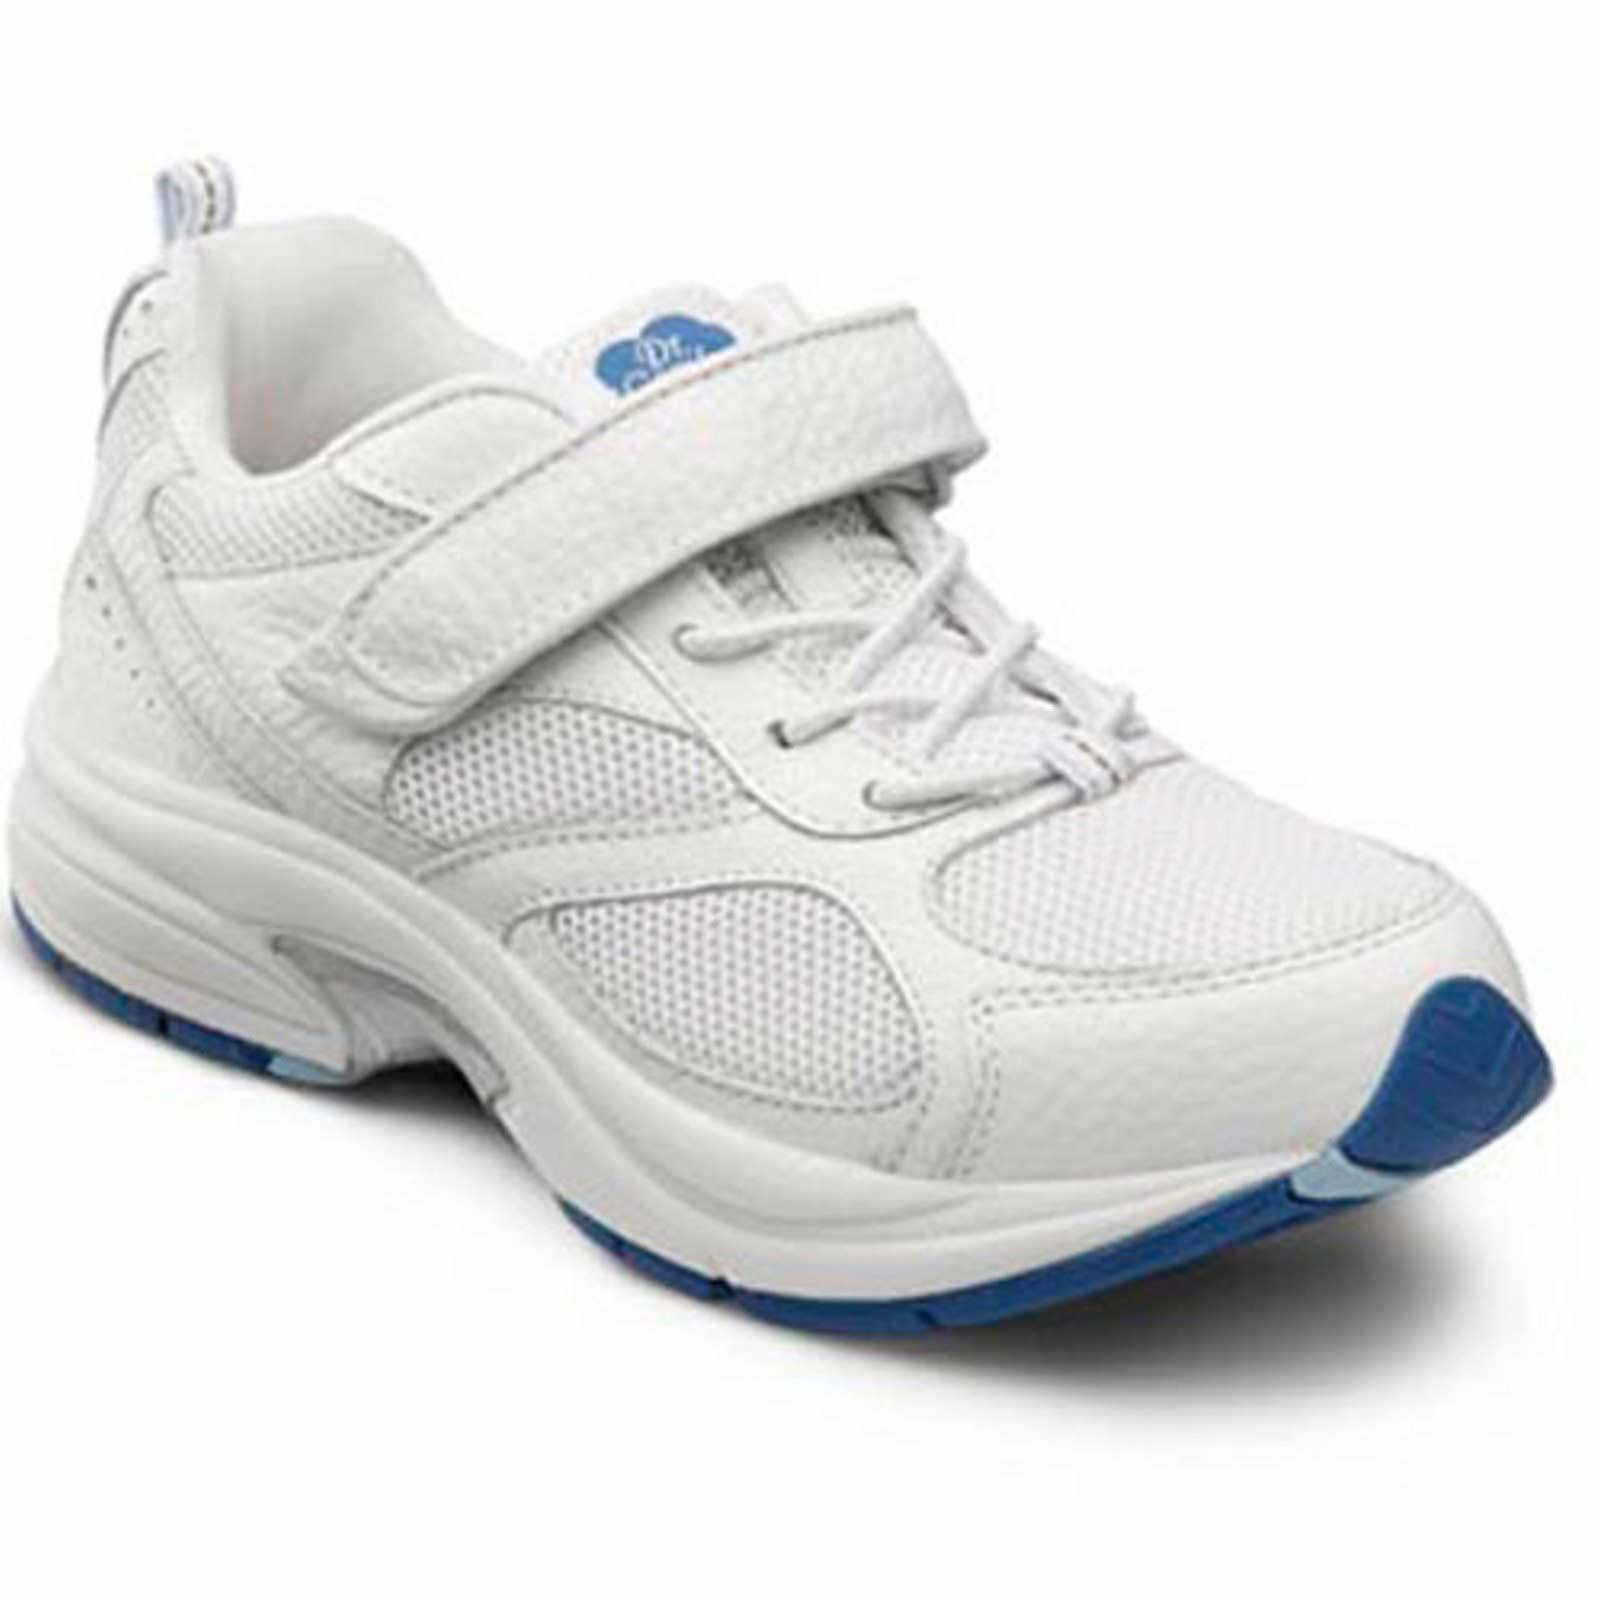 dr comfort shoes victory s therapeutic diabetic